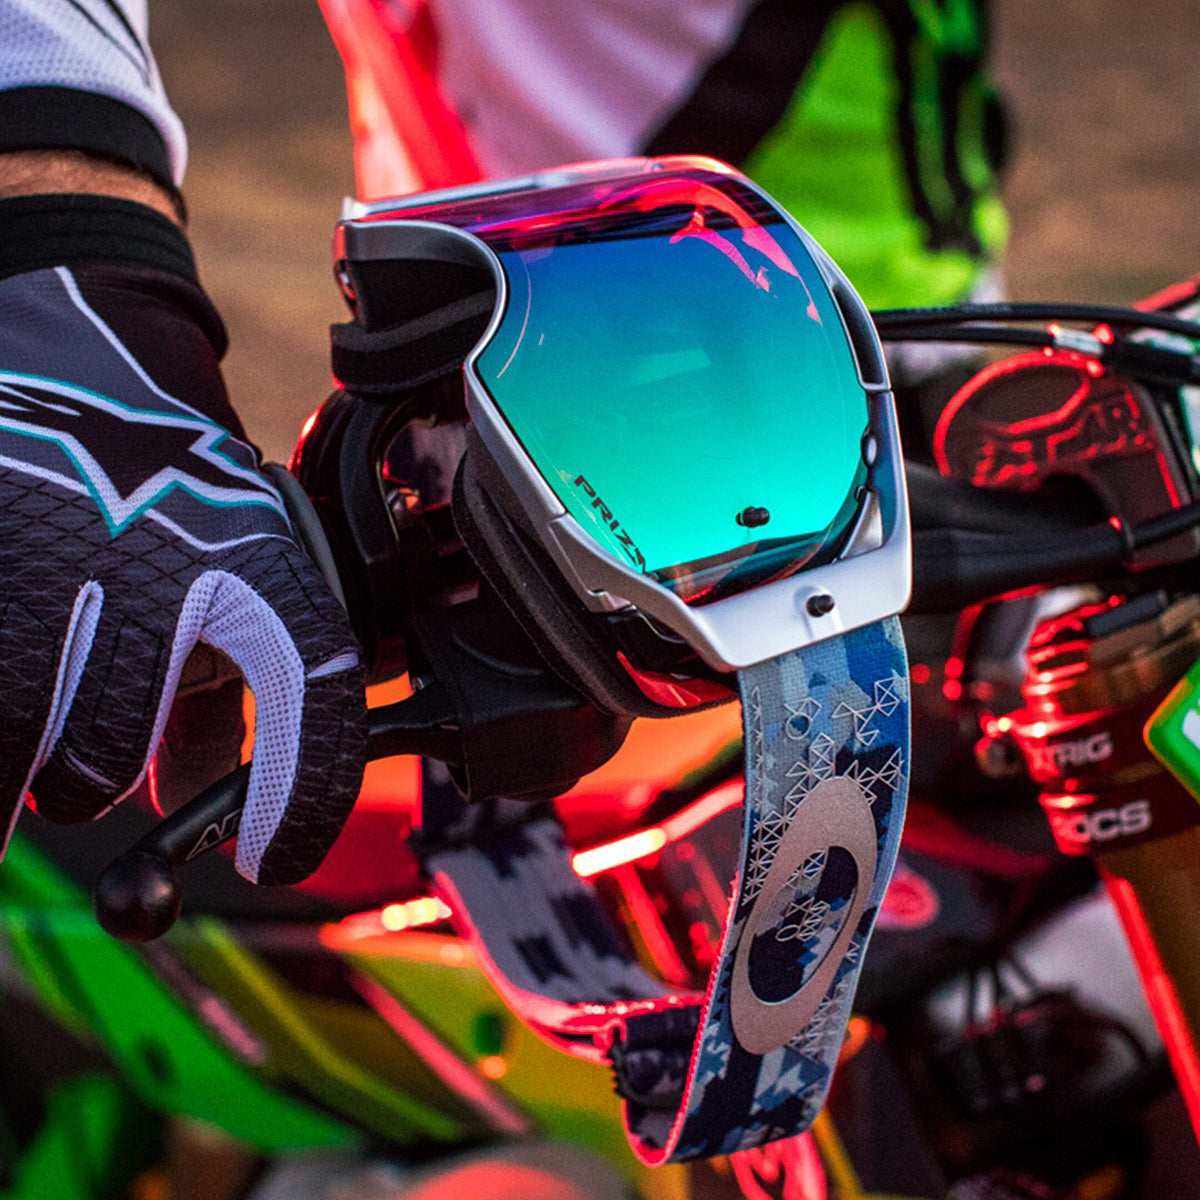 f9e0146b6341 Oakley Store Wall | Information and Guide Pages | Motorhelmets.com ...